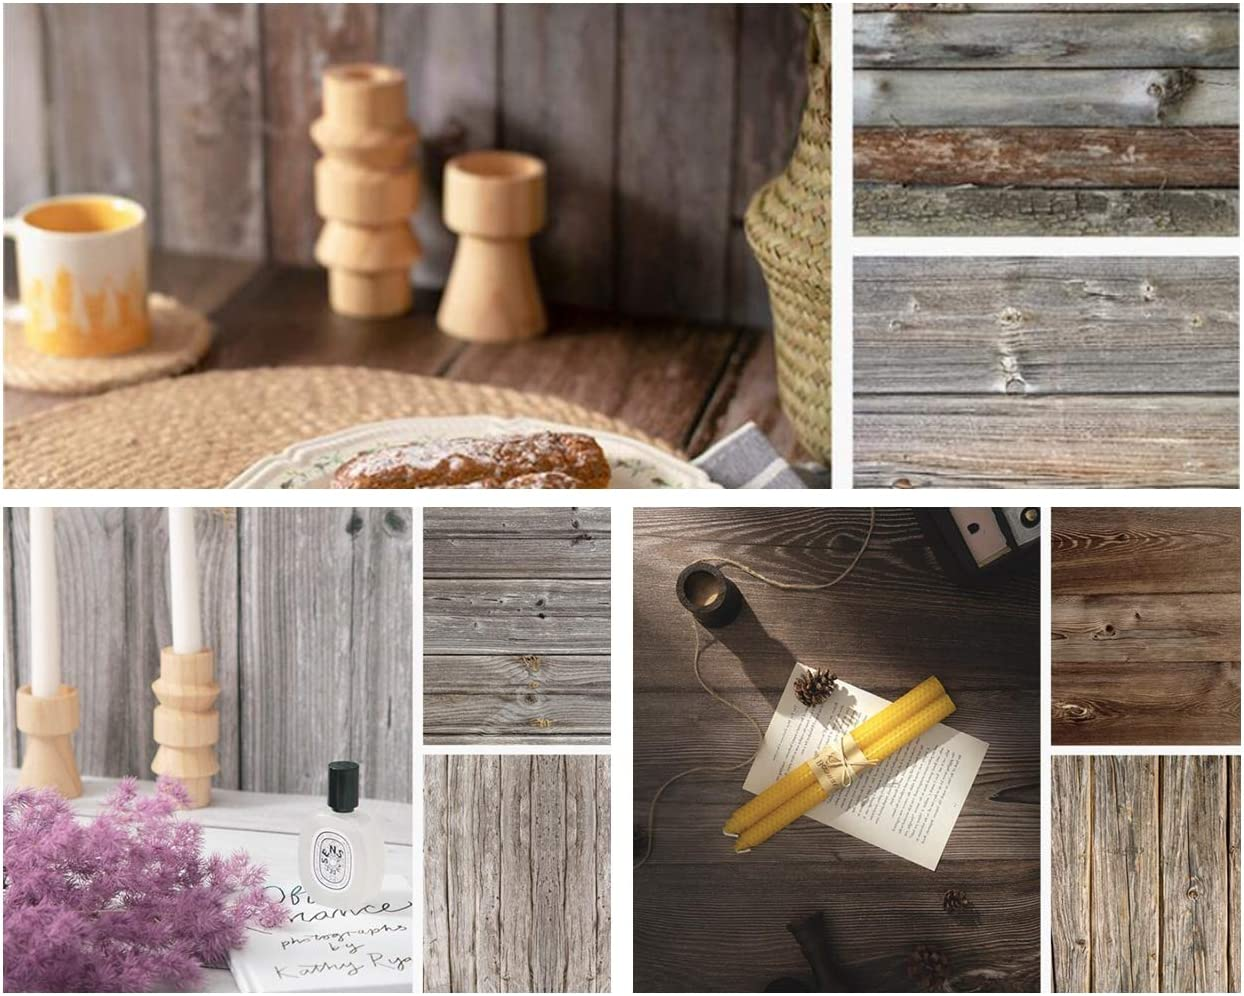 BEIYANG 3PCS 22x35 Inch 2 in 1 Photography Backdrops, Retro Vintage Wood Texture Waterproof Background Paper Tabletop Backdrop Food Jewelry Cosmetics Makeup Professional Photo Shoot